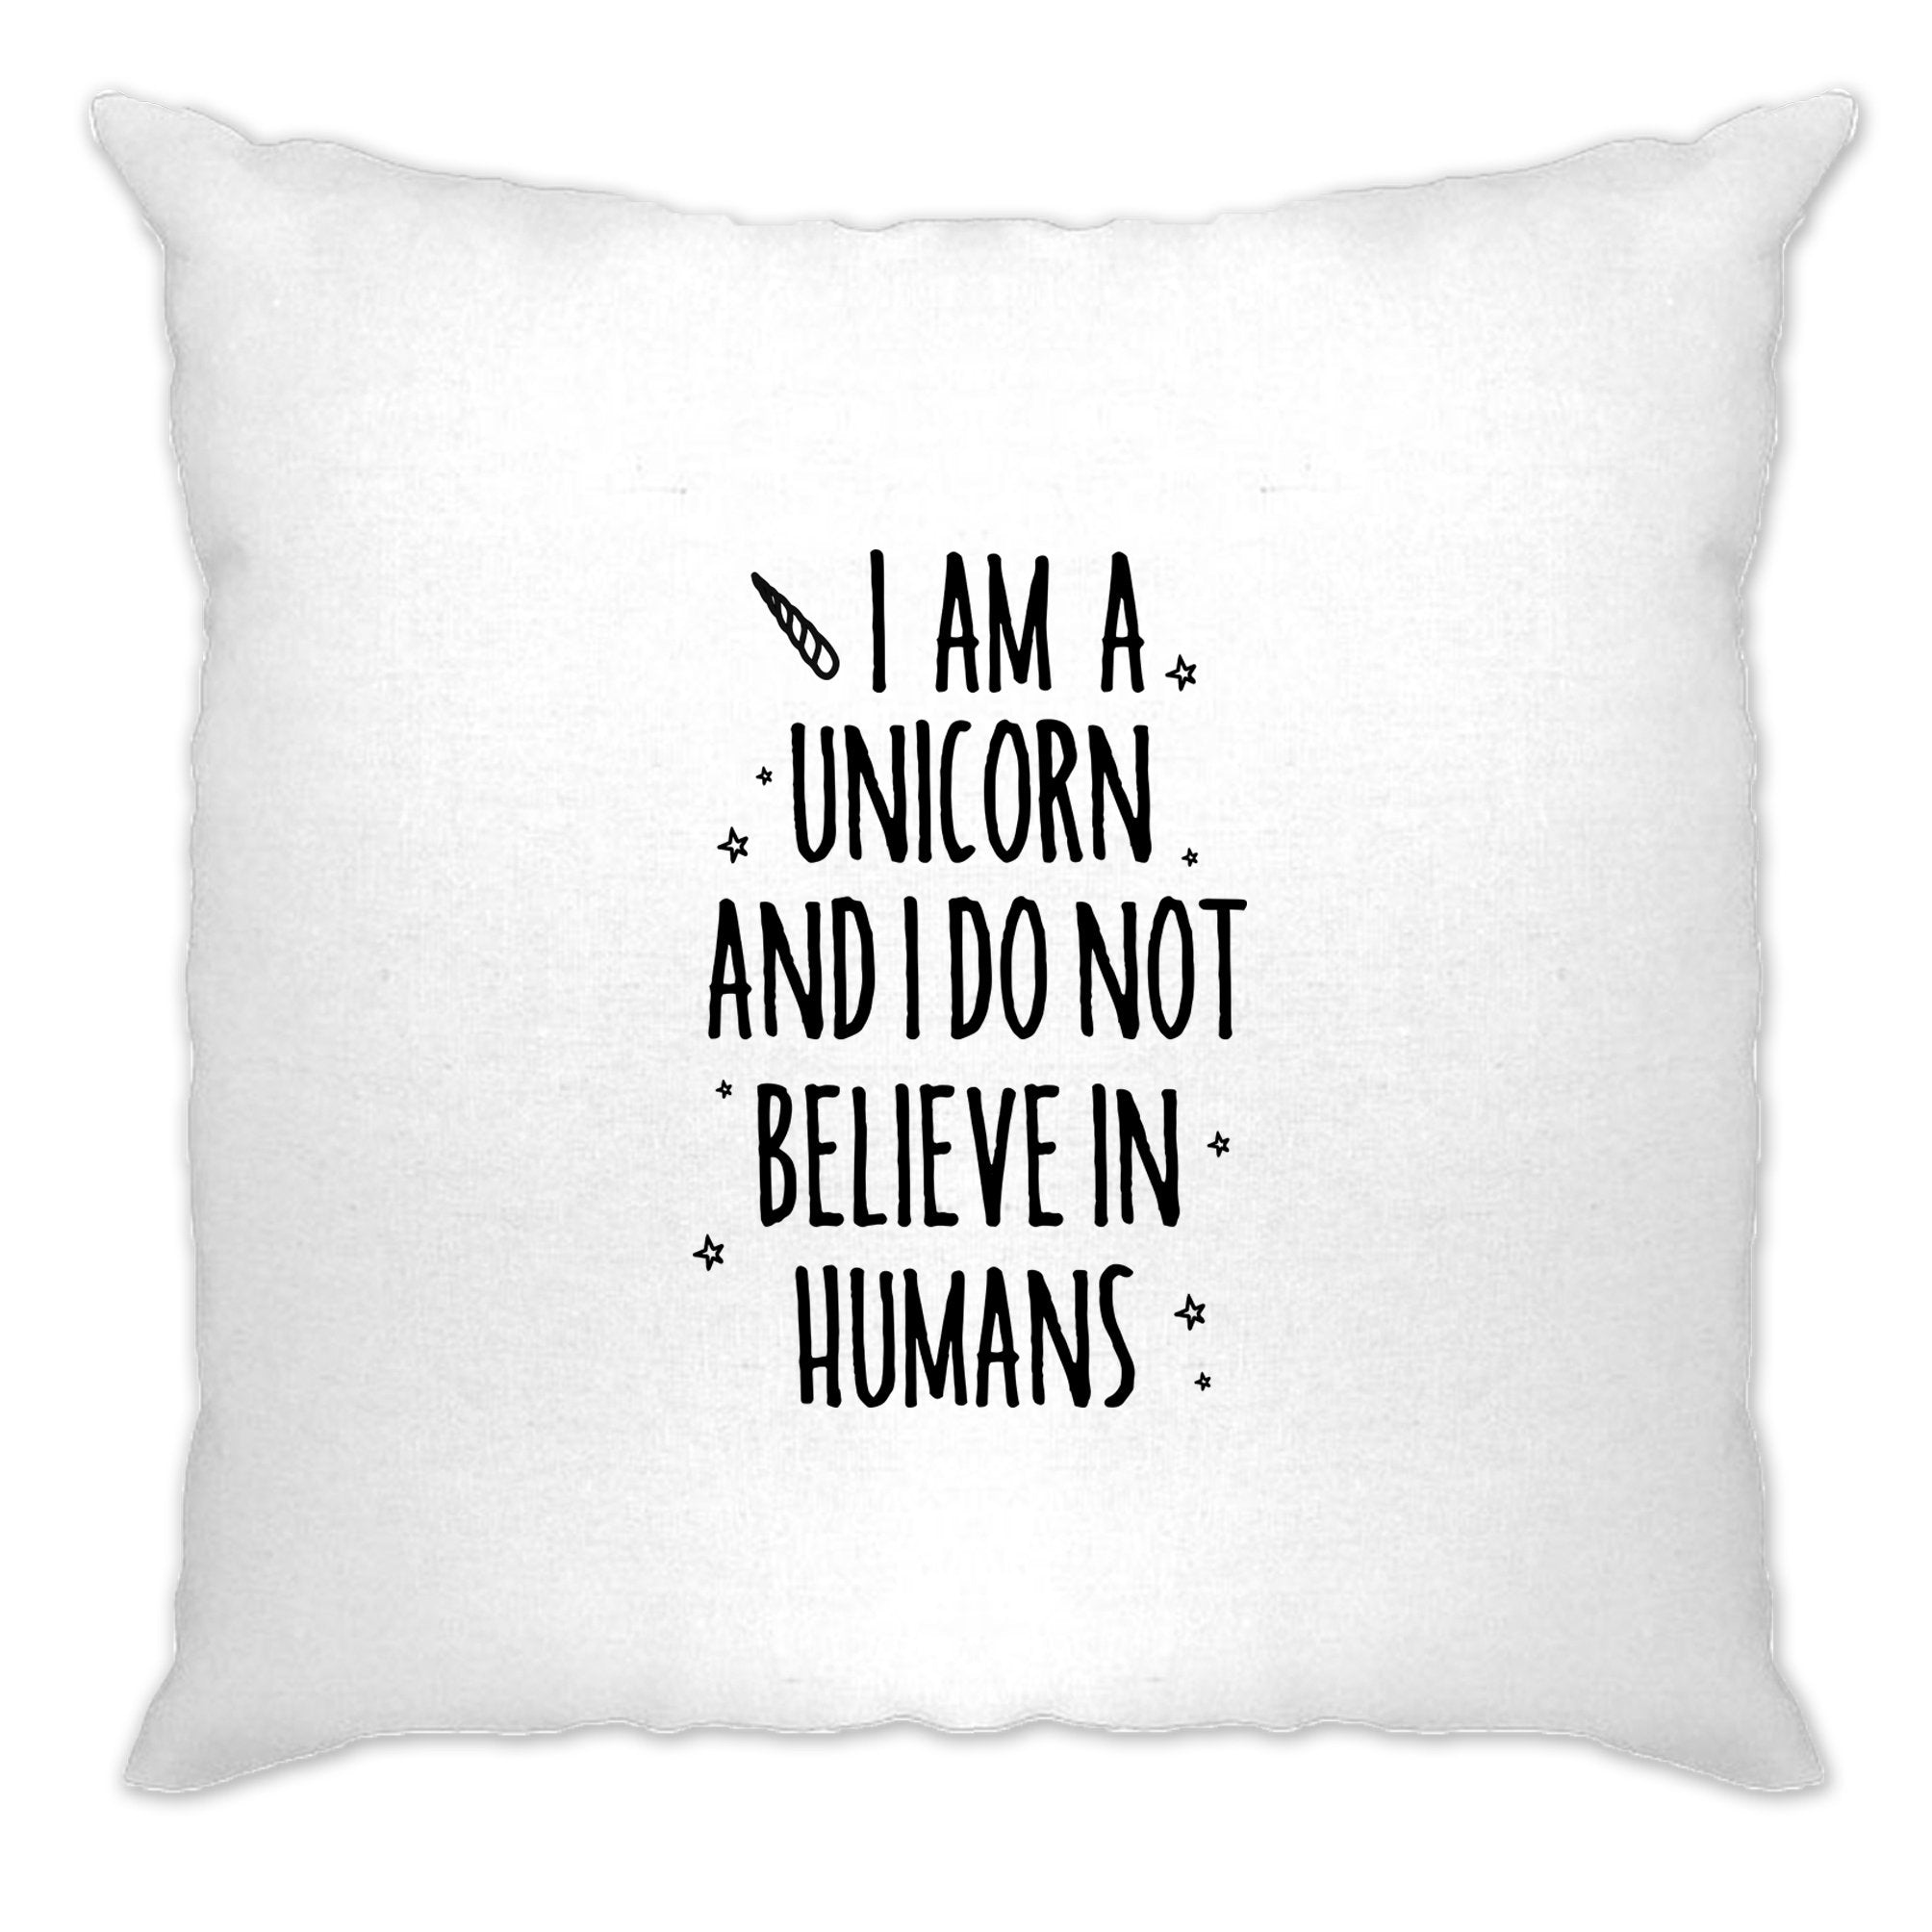 I'm A Unicorn Cushion Cover I Don't Believe In Humans